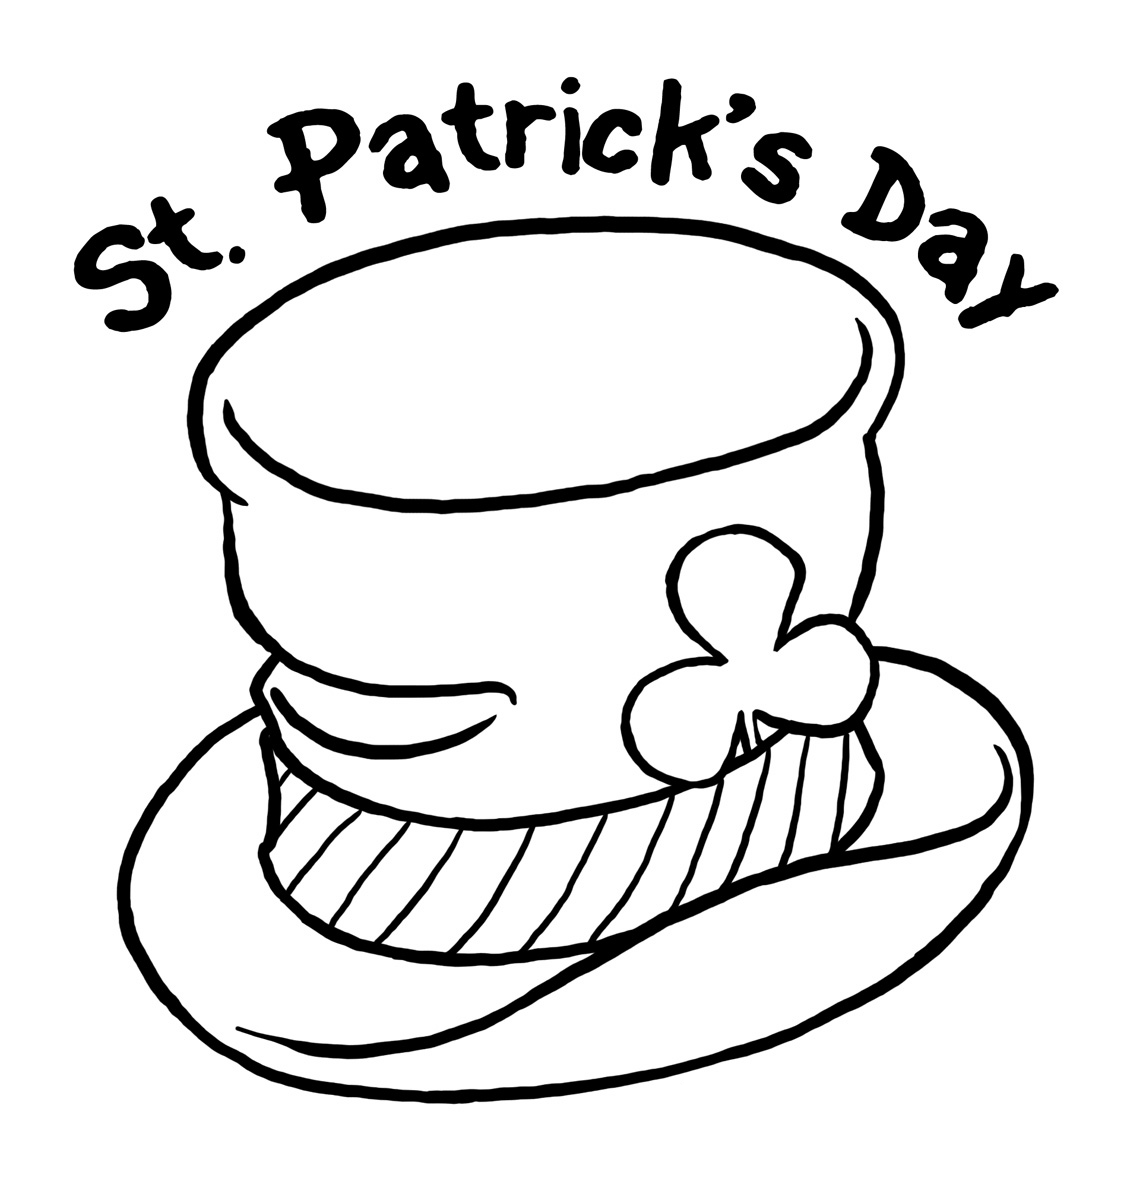 st patricks day coloring pages 12 st patricks day printable coloring pages for adults day patricks coloring pages st